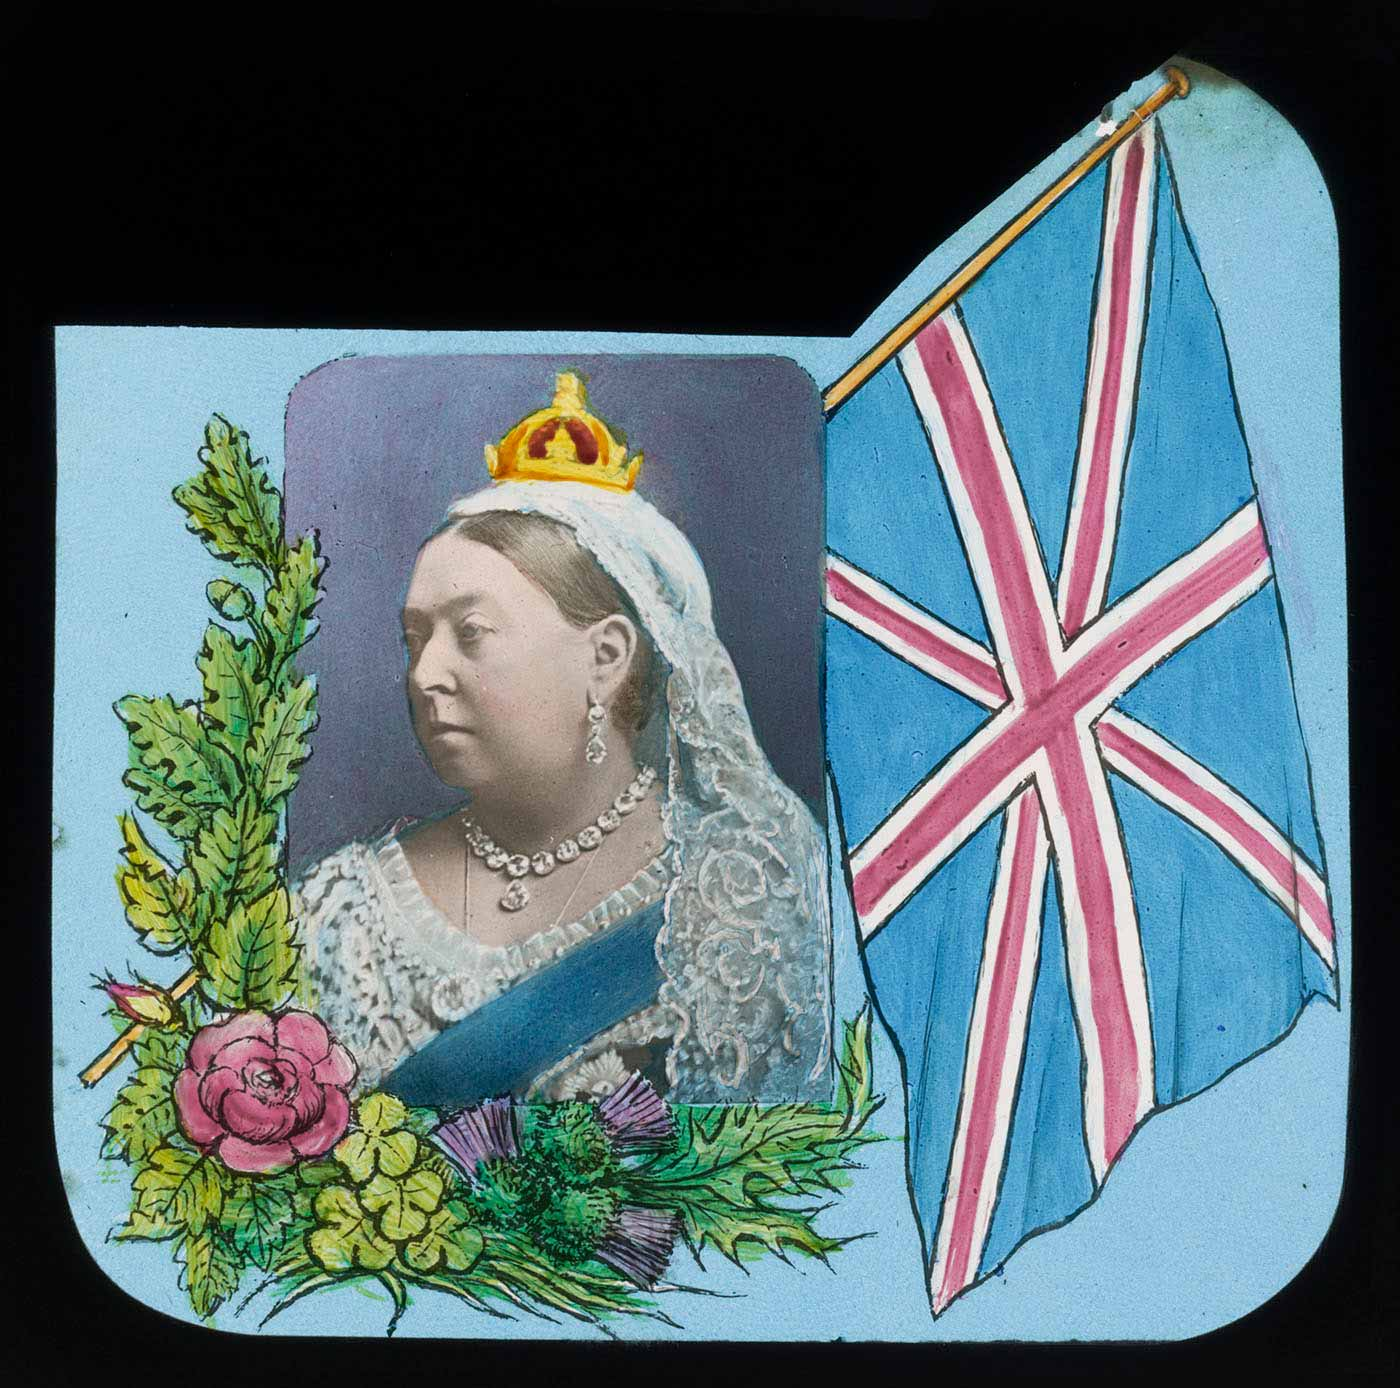 Slide of a woman wearing regal clothing, layered over an image of flowers and fauna and the British flag. - click to view larger image